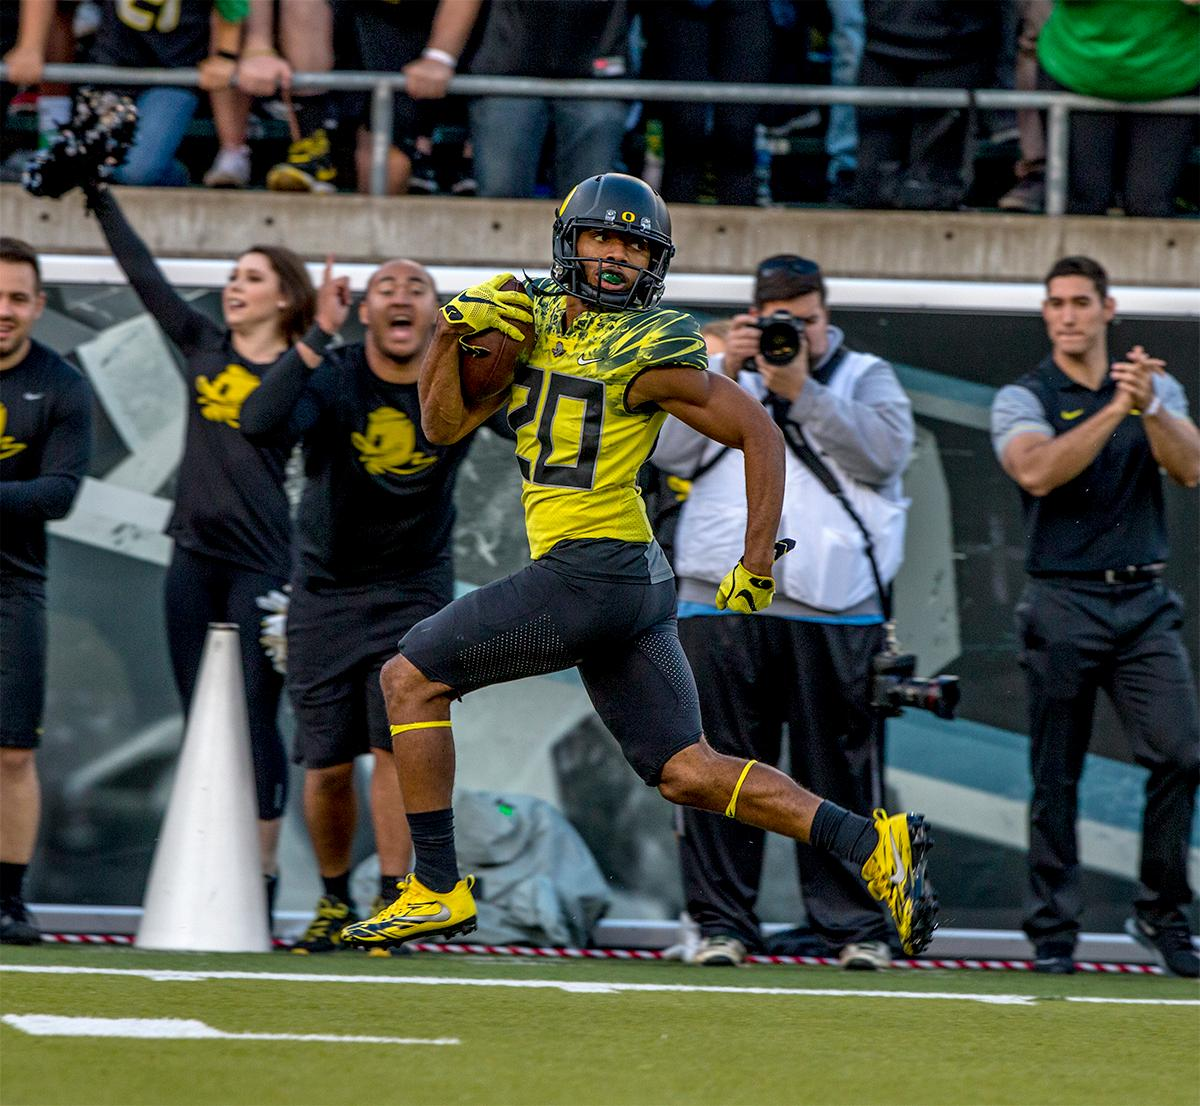 The Duck's Tony Brooks-James (#20) ensures his path is clear as he runs the ball in for a touchdown. The Oregon Ducks broke their losing streak by defeating the ASU Sun Devils on Saturday 54-35. Photo by August Frank, Oregon News Lab